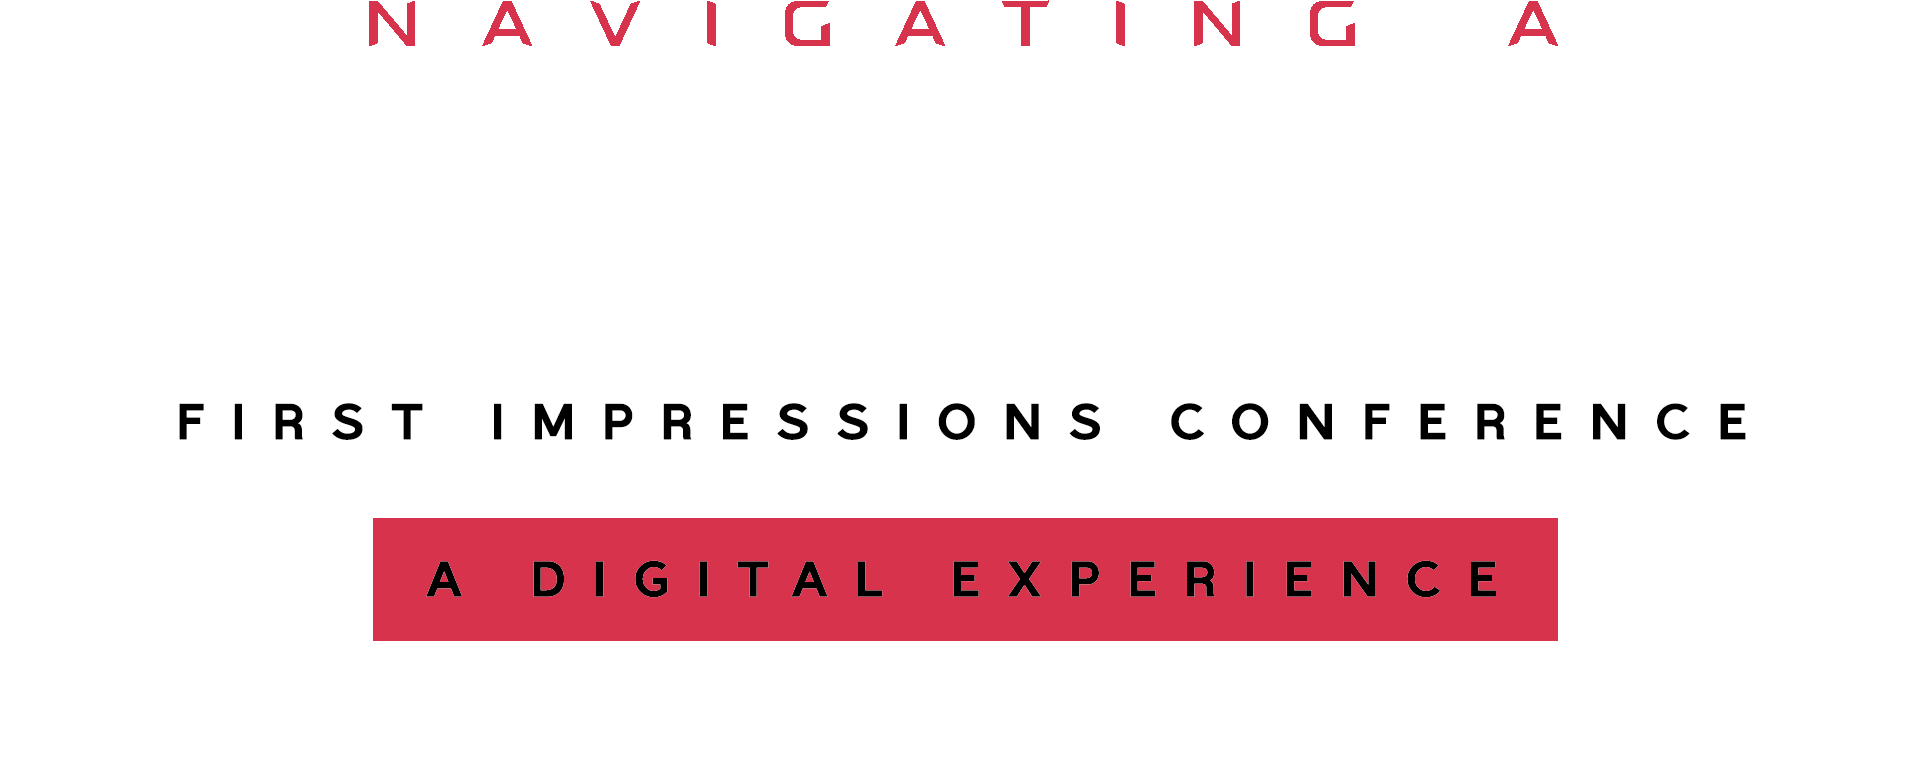 First Impressions Conference